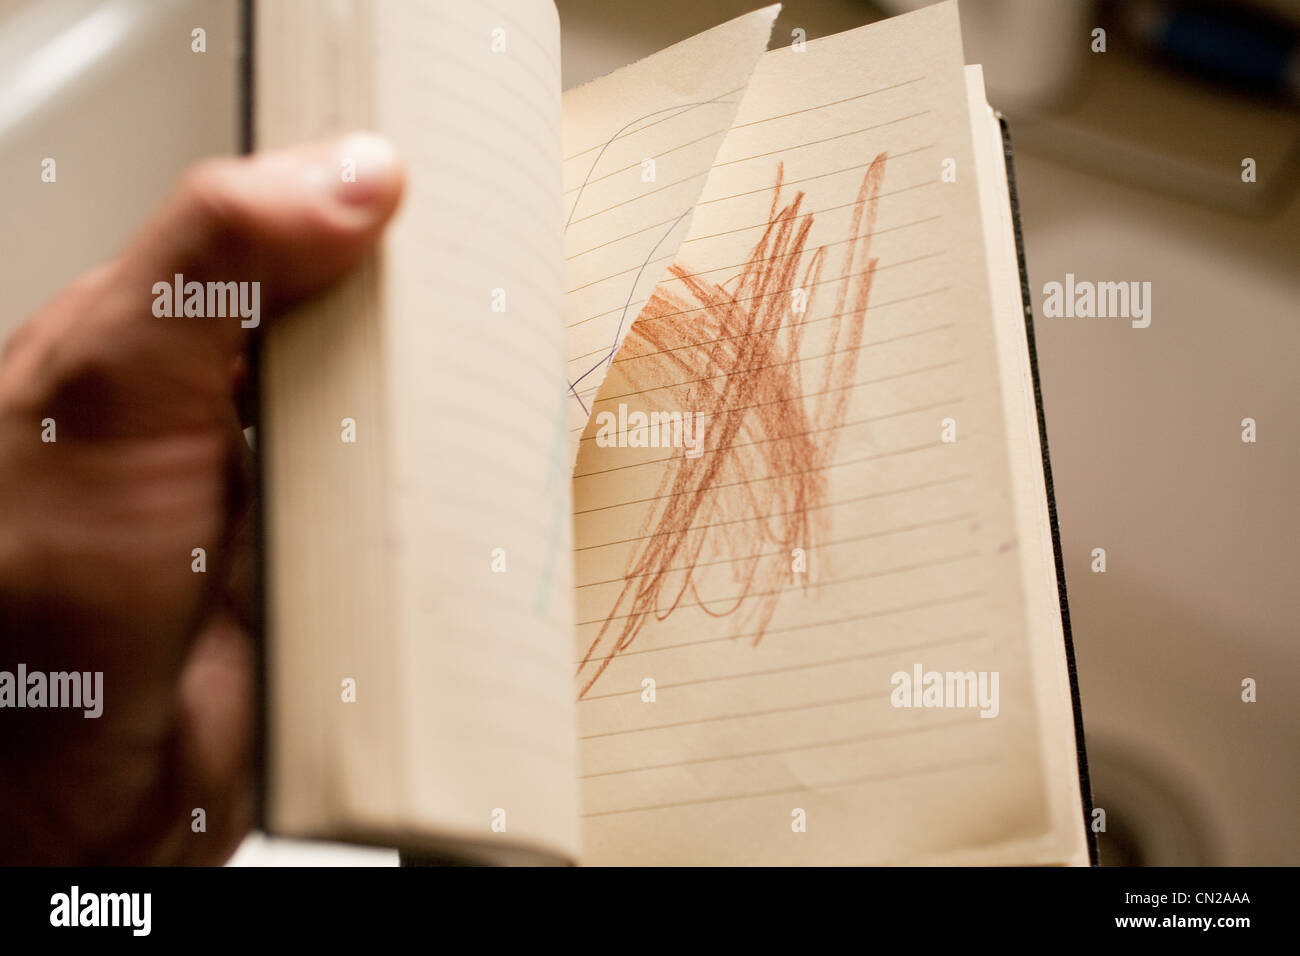 Person holding notebook with scribble - Stock Image